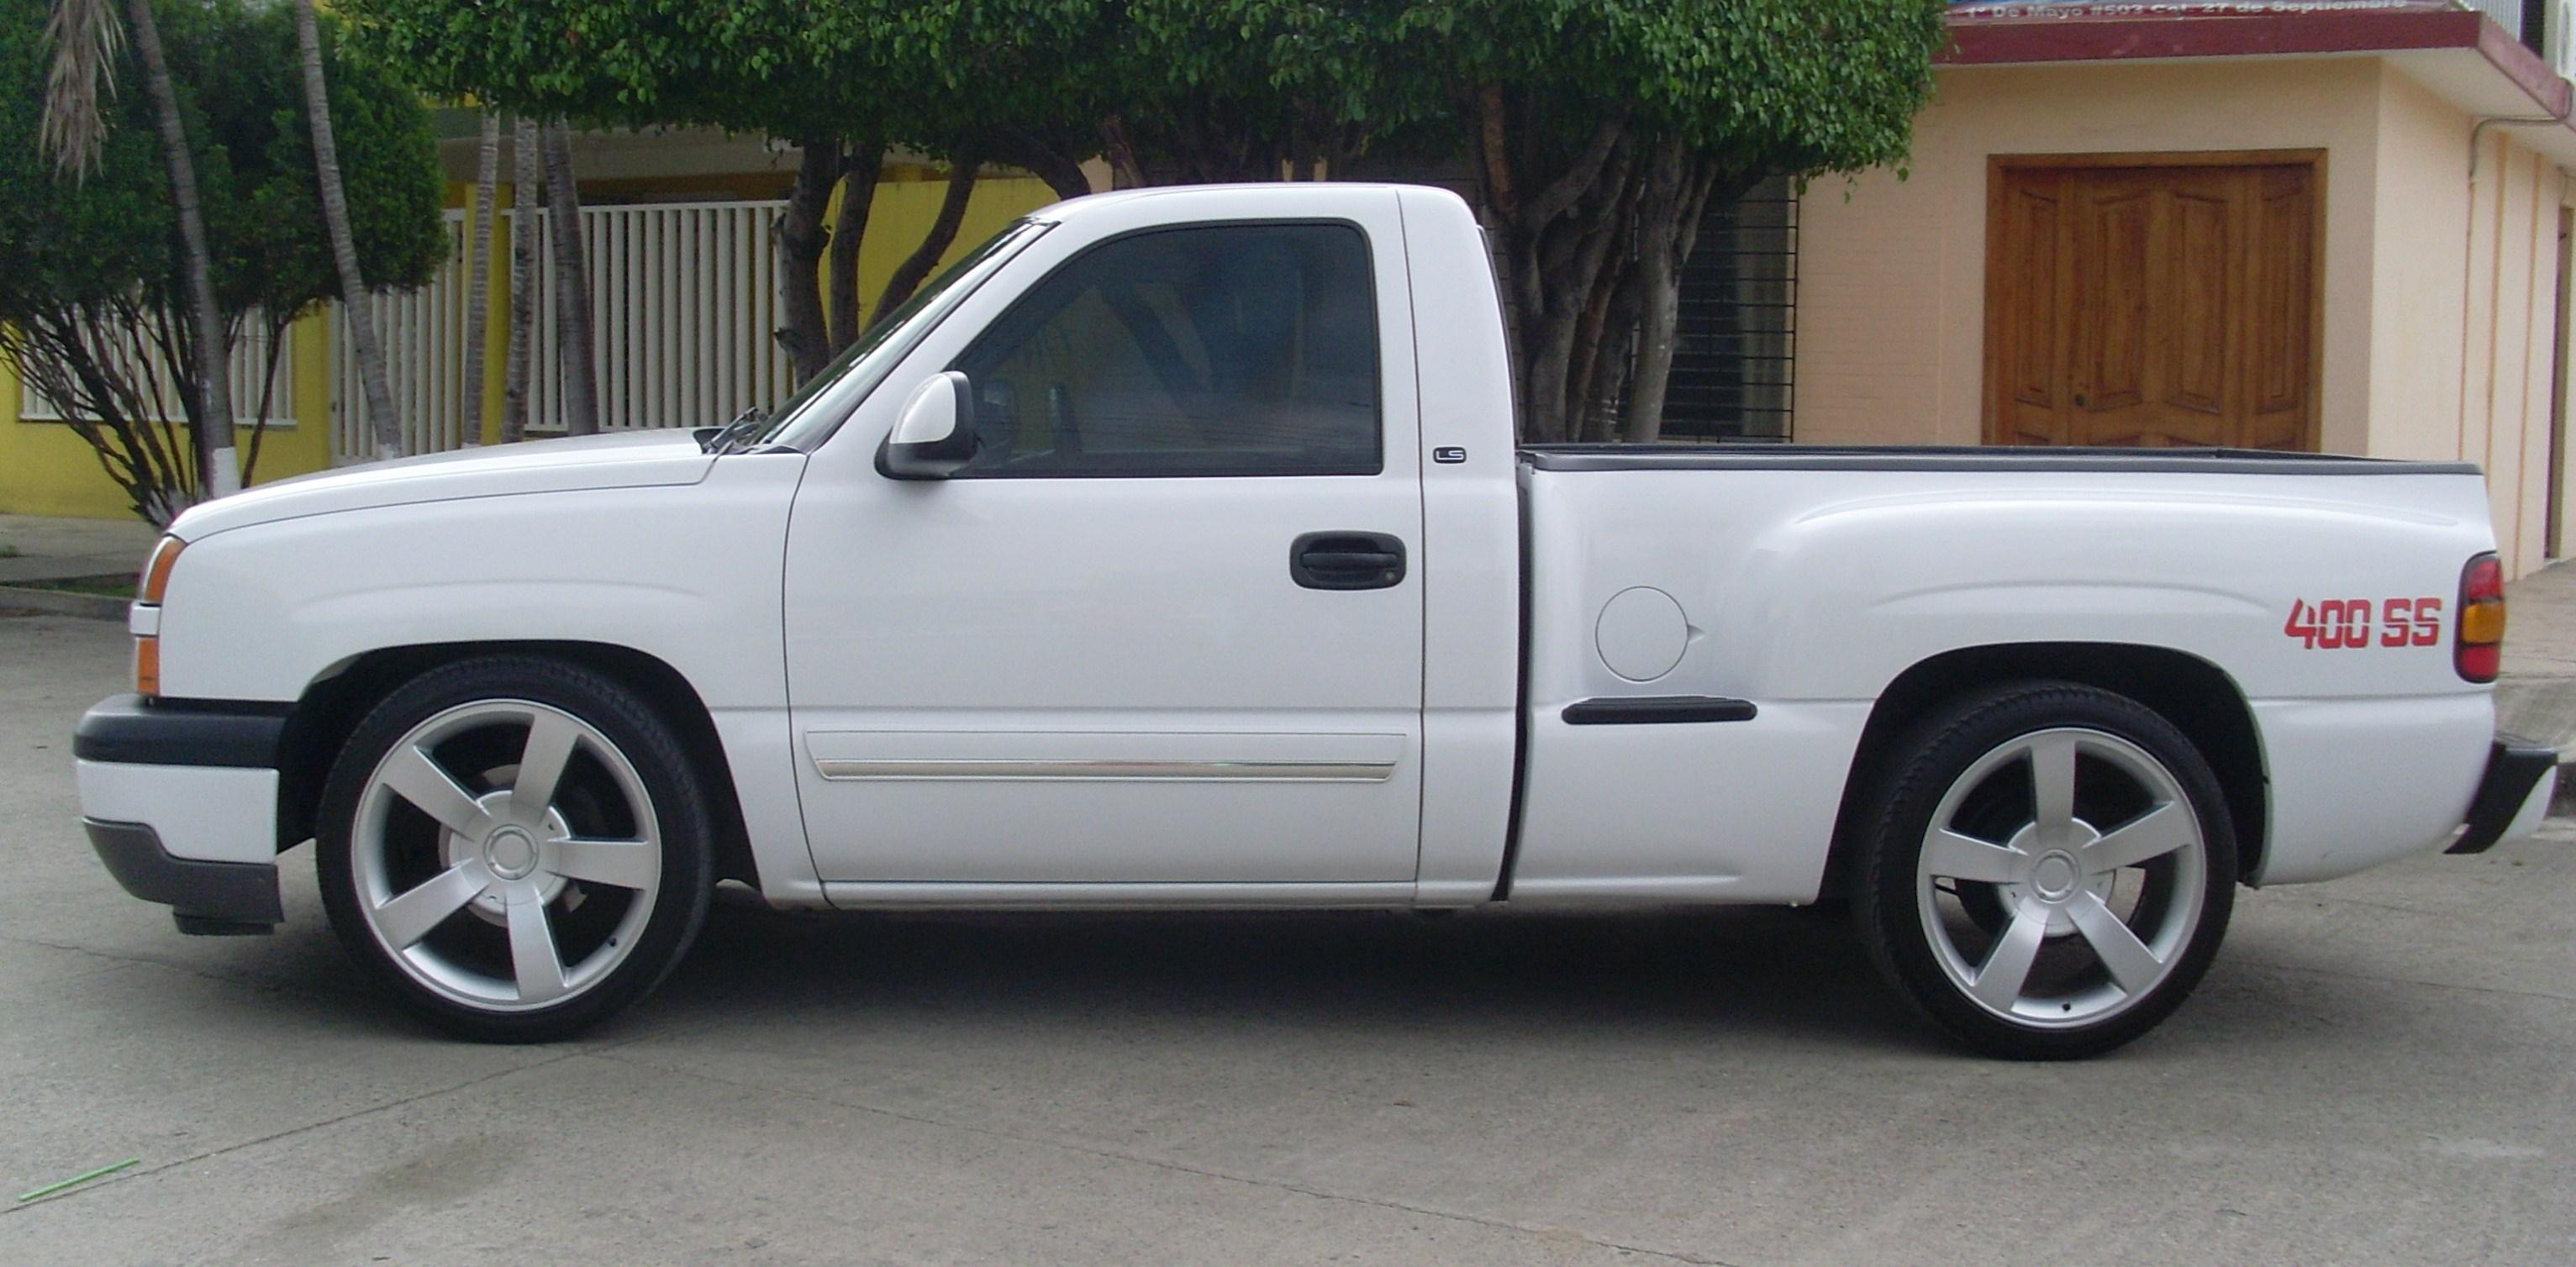 400ssgarces's 2005 Chevrolet Silverado 1500 Regular Cab